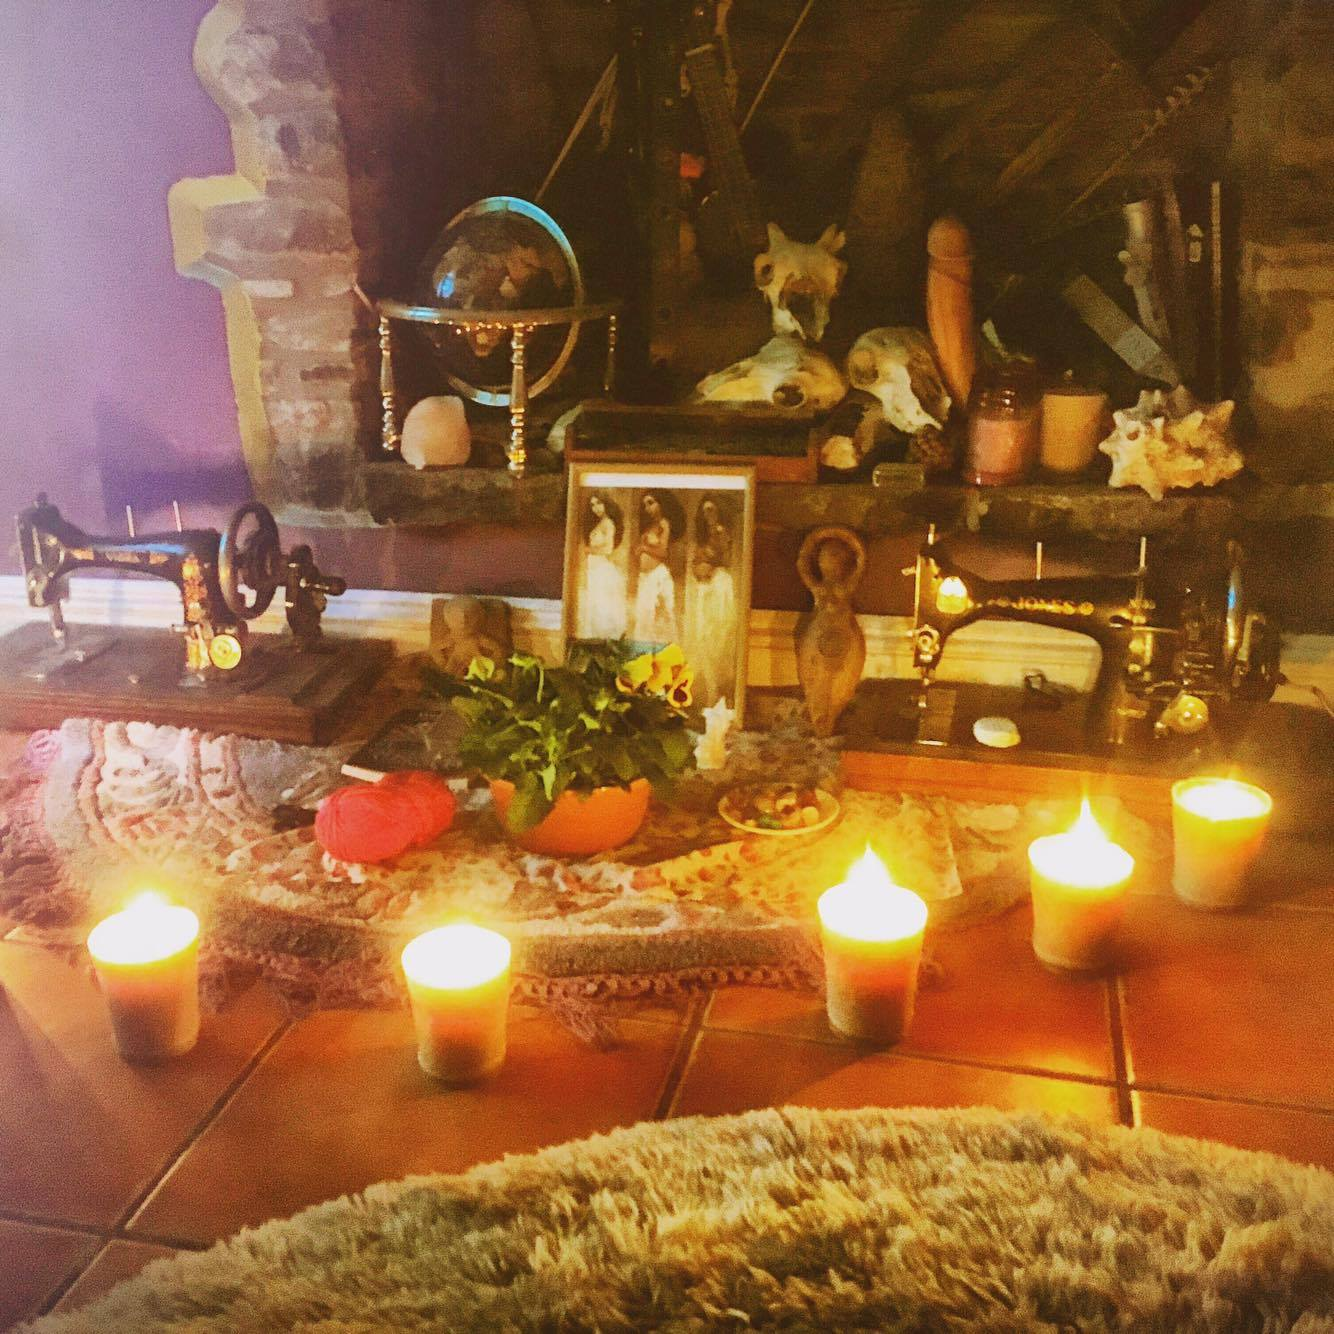 """Probably better known as a """"hippy baby shower"""". We ate cake and drank tea and blessed and energised the birth space, talked about motherhood and bound ourselves with red cord around the wrist that we can only cut off when baby has arrived safely."""